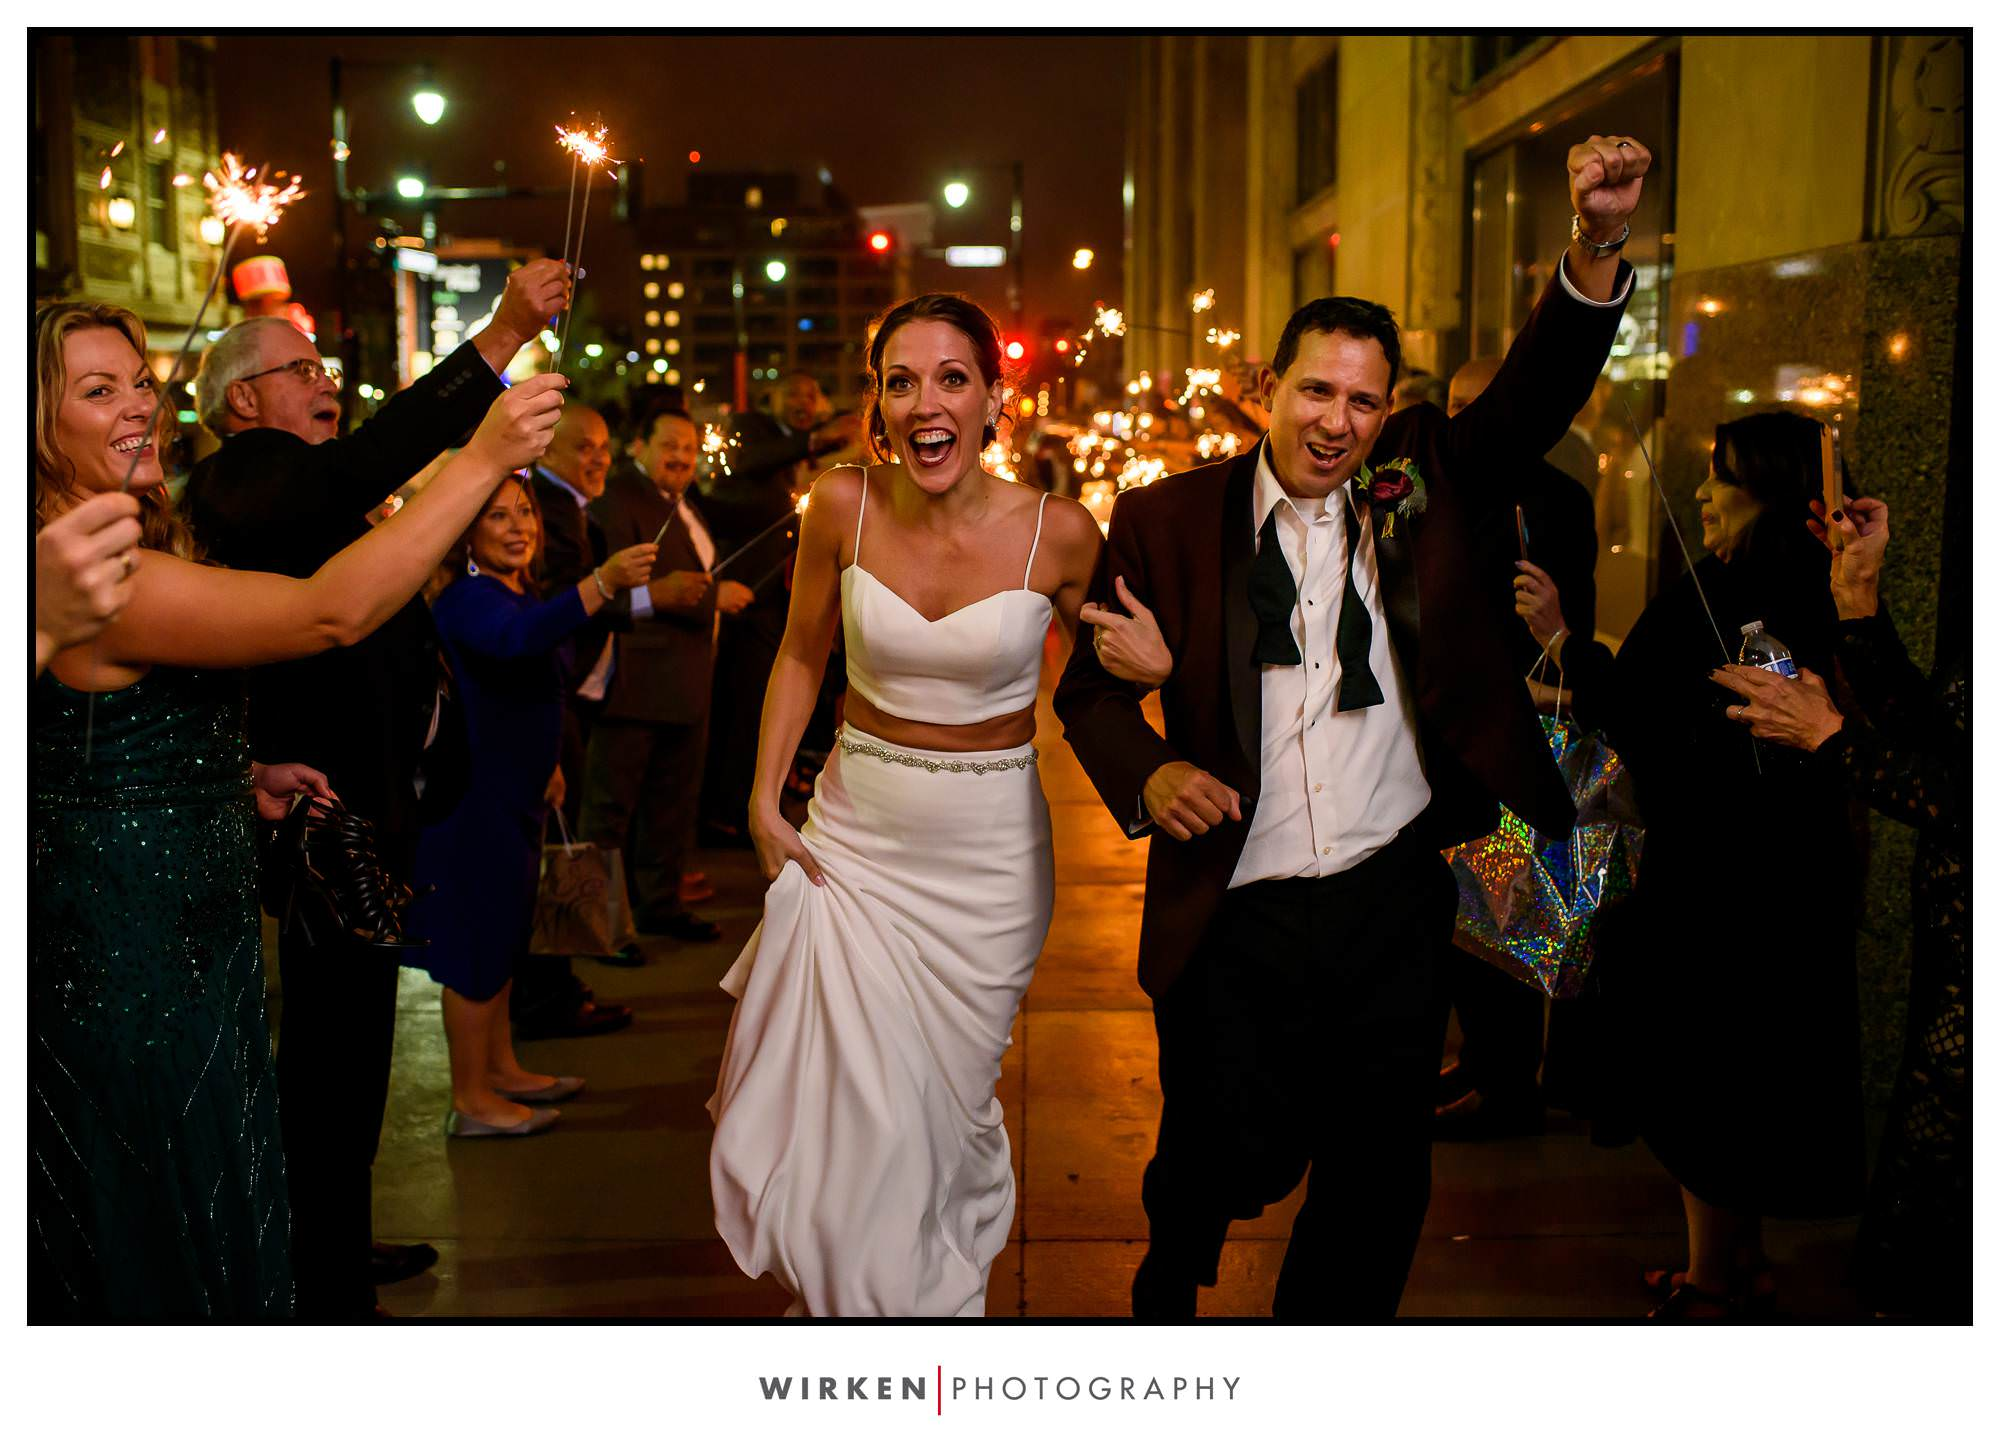 Bride and groom exit with sparklers after their Grand Hall wedding reception in Kansas City.